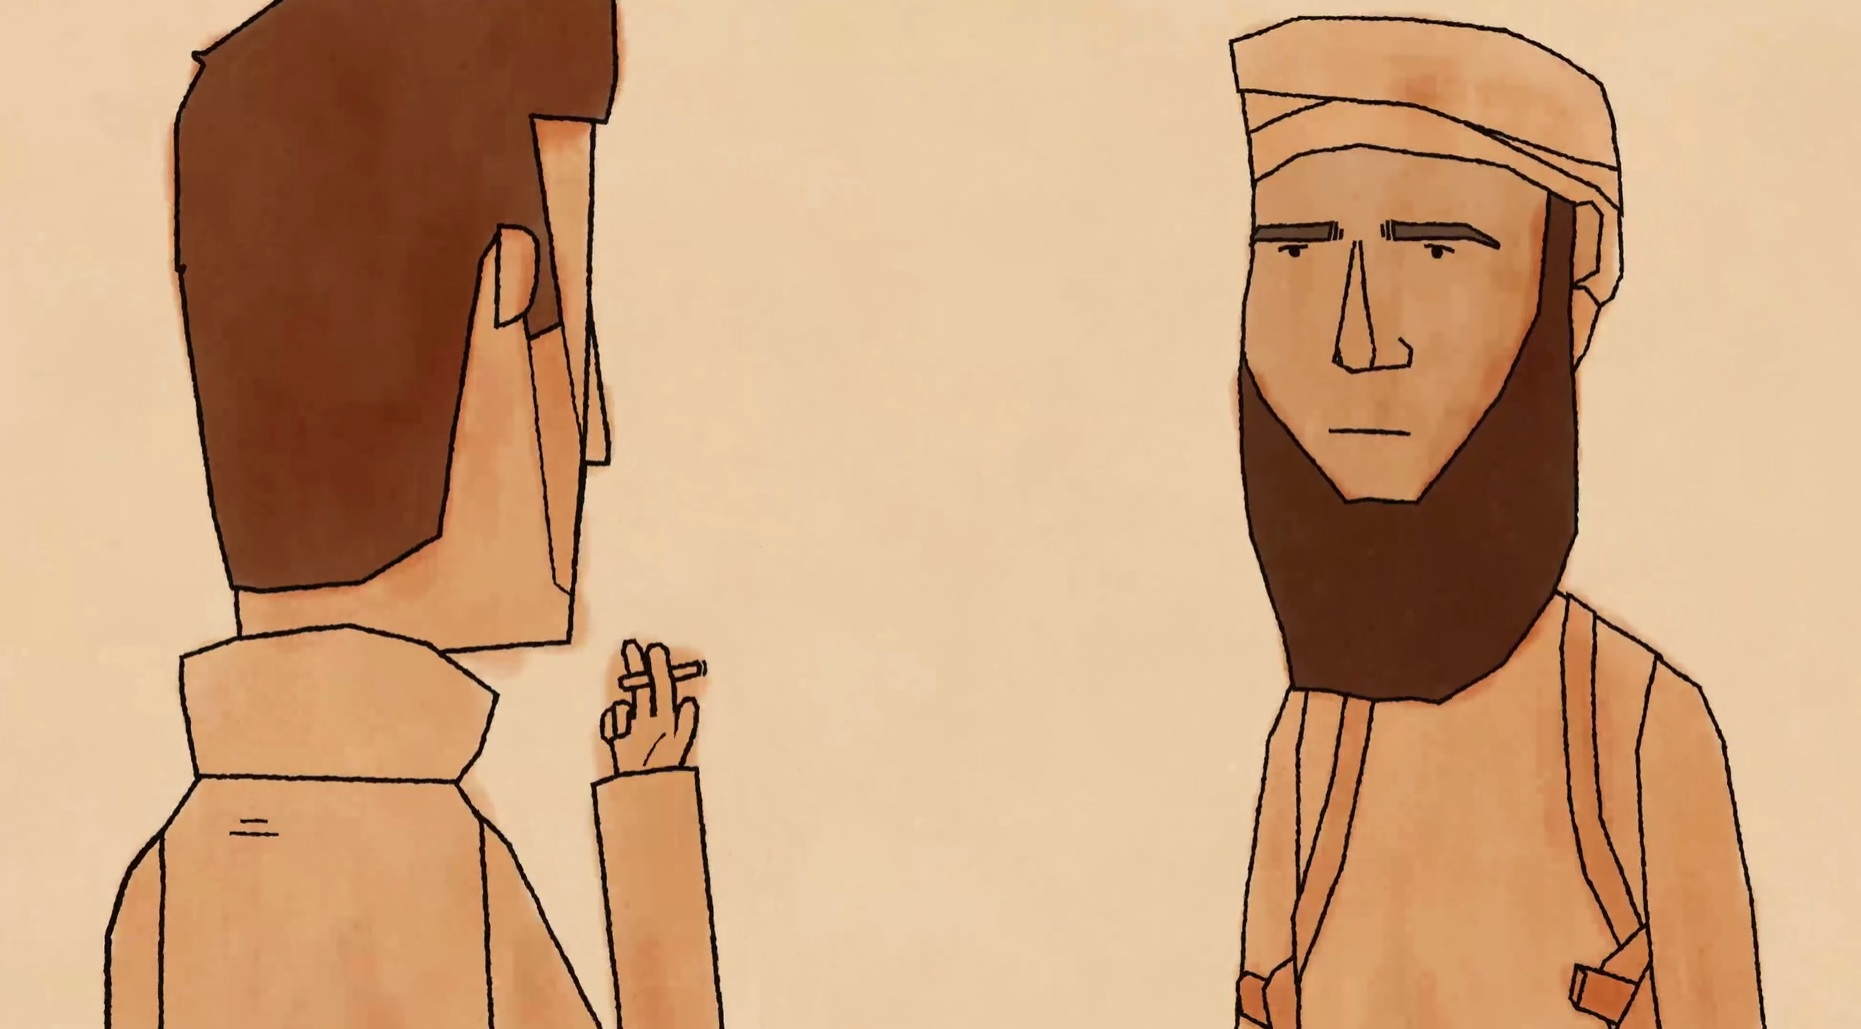 This short animation explores the Life Inside Islamic State